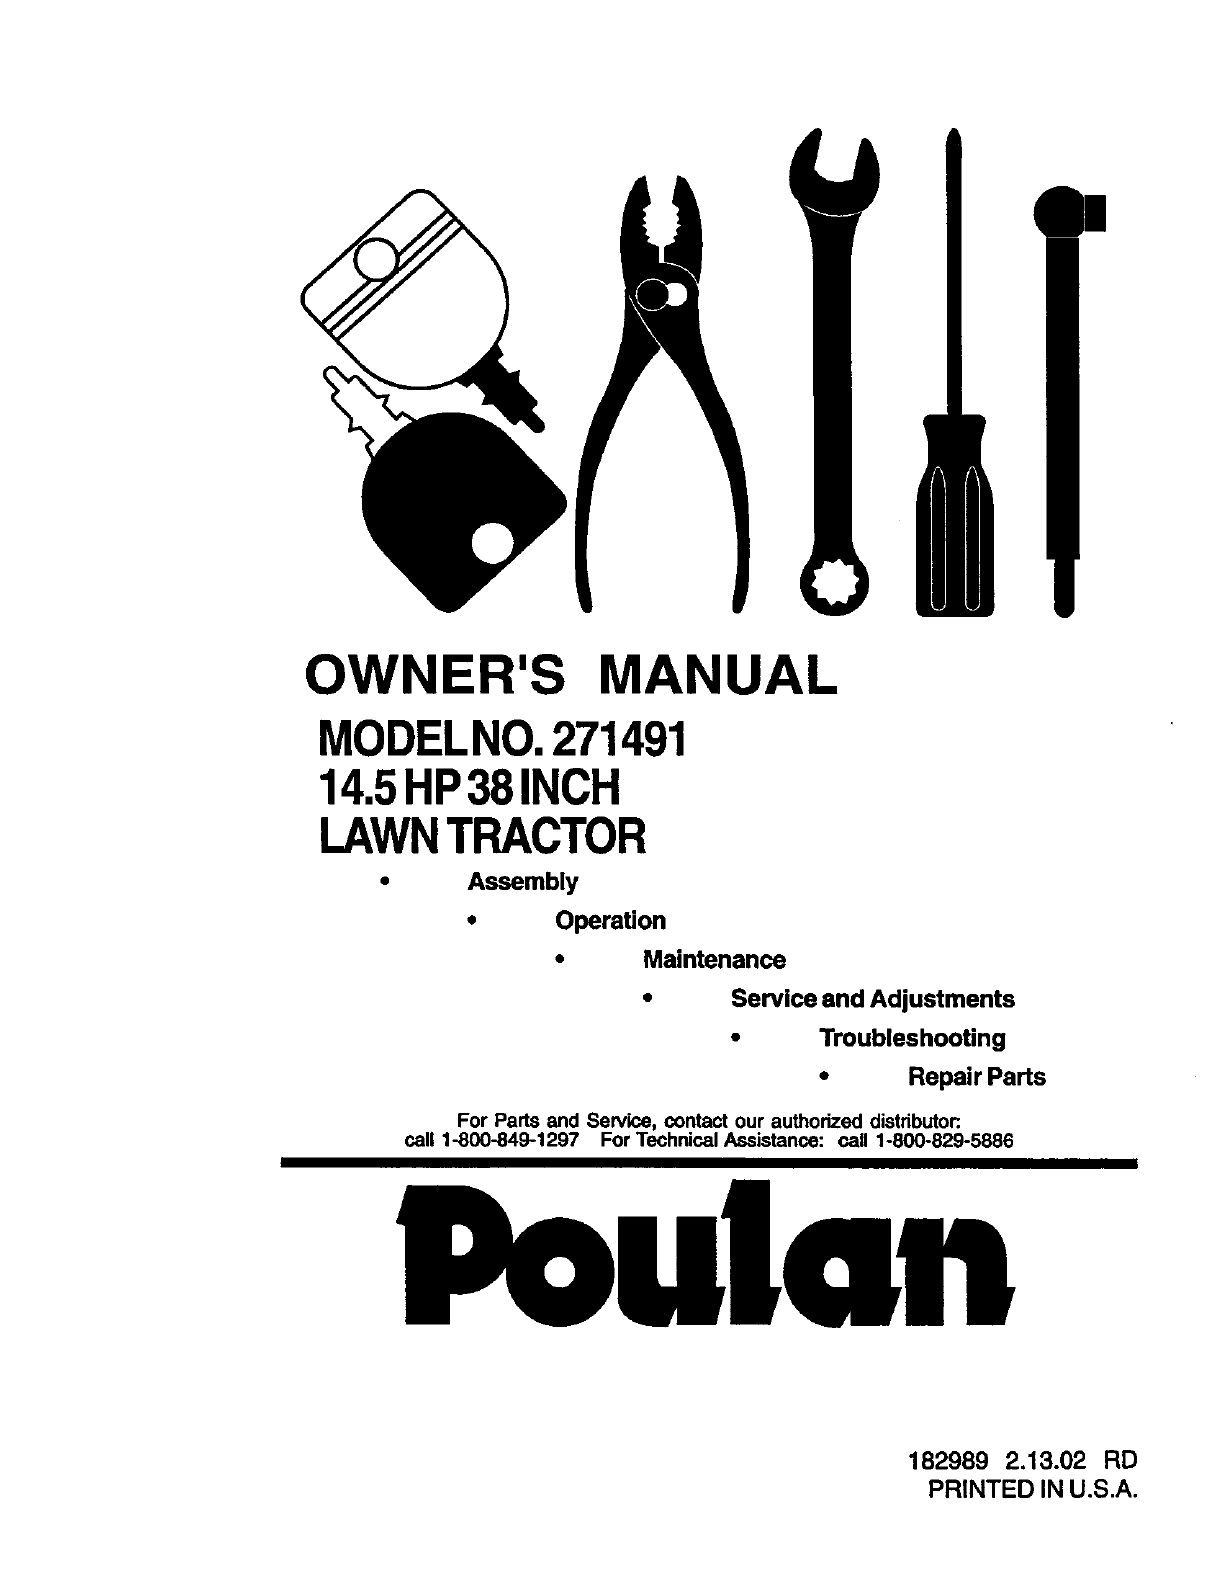 Poulan 271491 User Manual Lawn Tractor Manuals And Guides L0203207 14 5hp Wiring Diagram